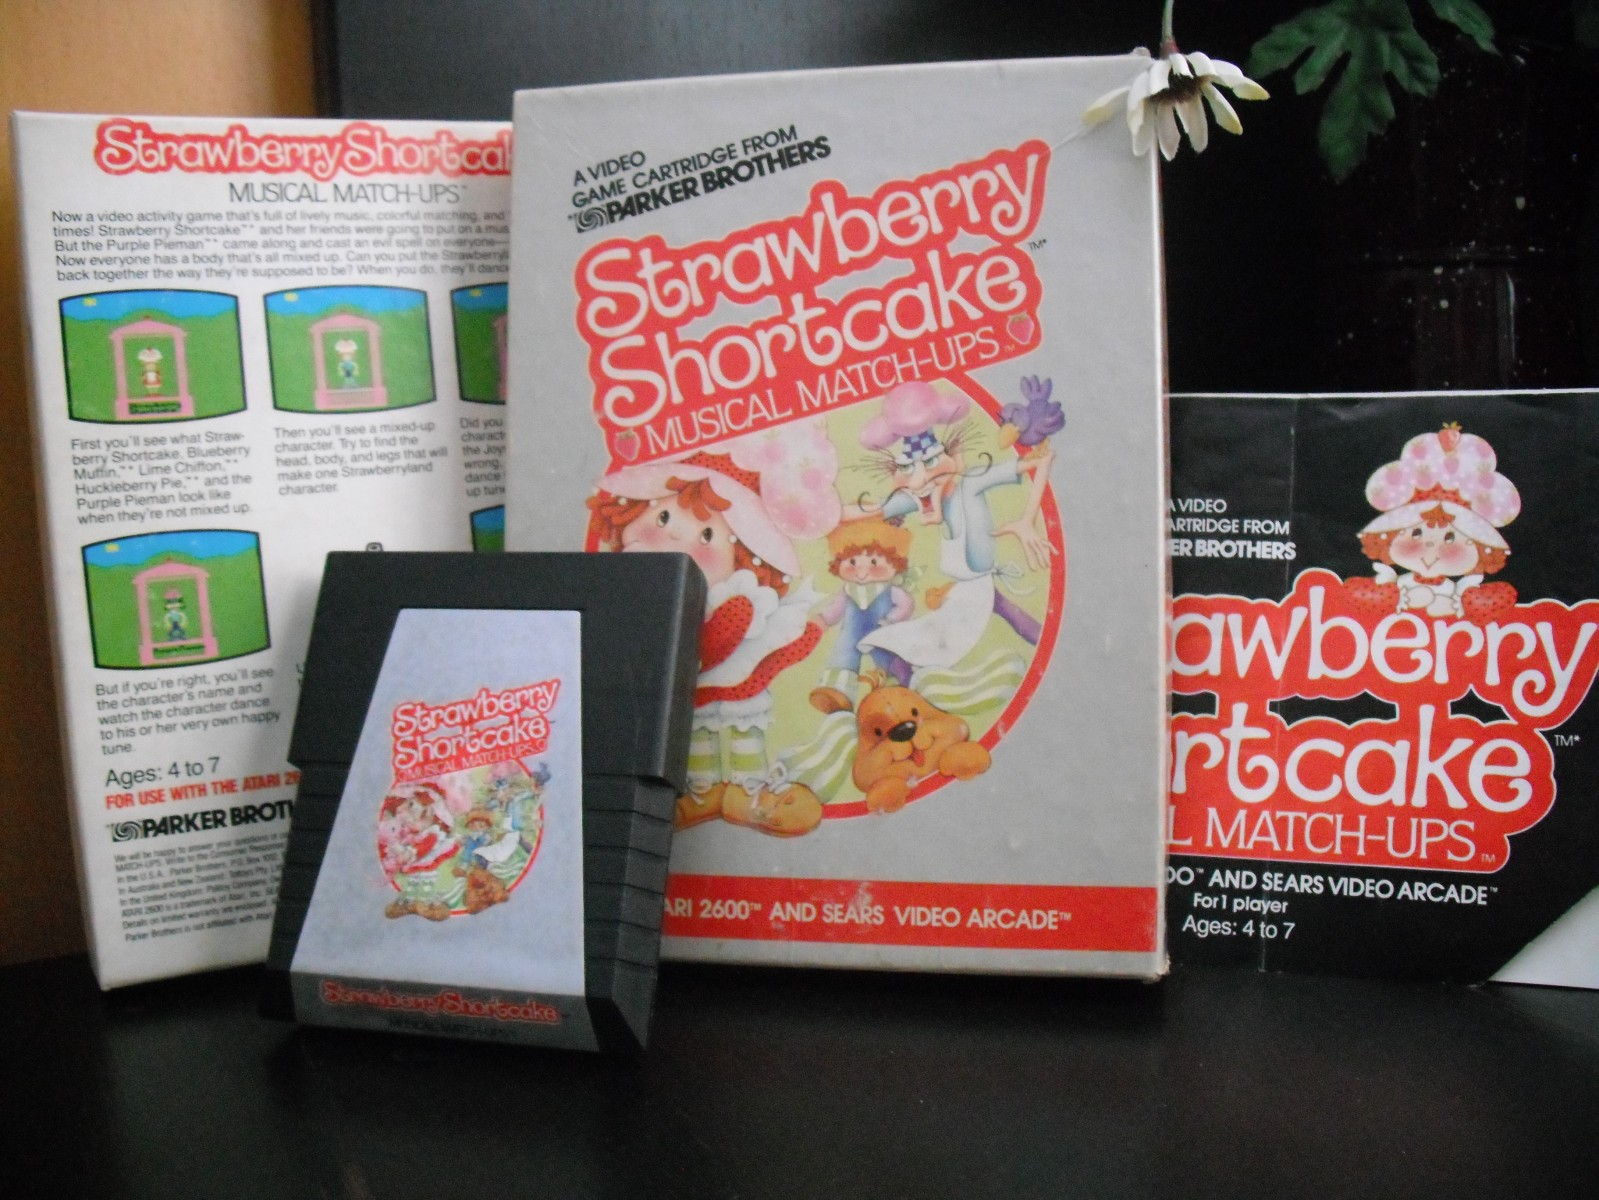 Strawberry Shortcake Musical Matchups (Parker Brothers)